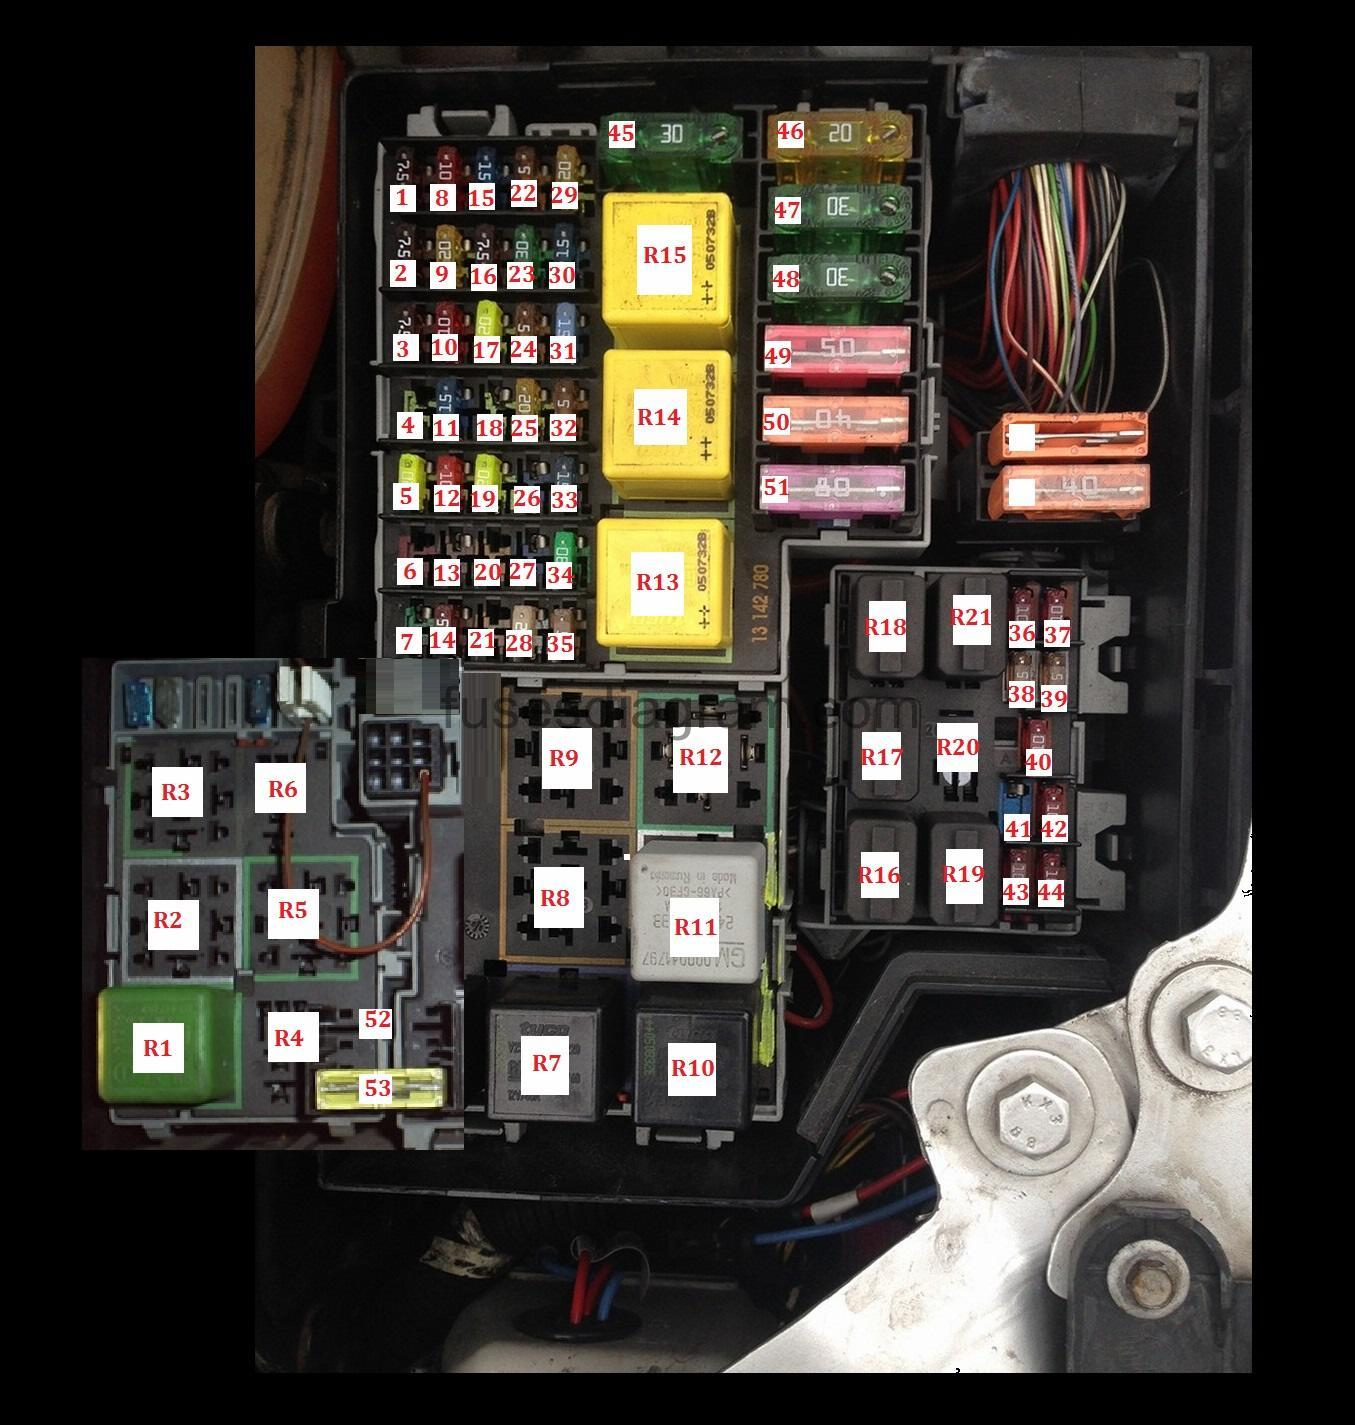 Fuse Box Opel Vauxhall Corsa C Gm Van Diagram